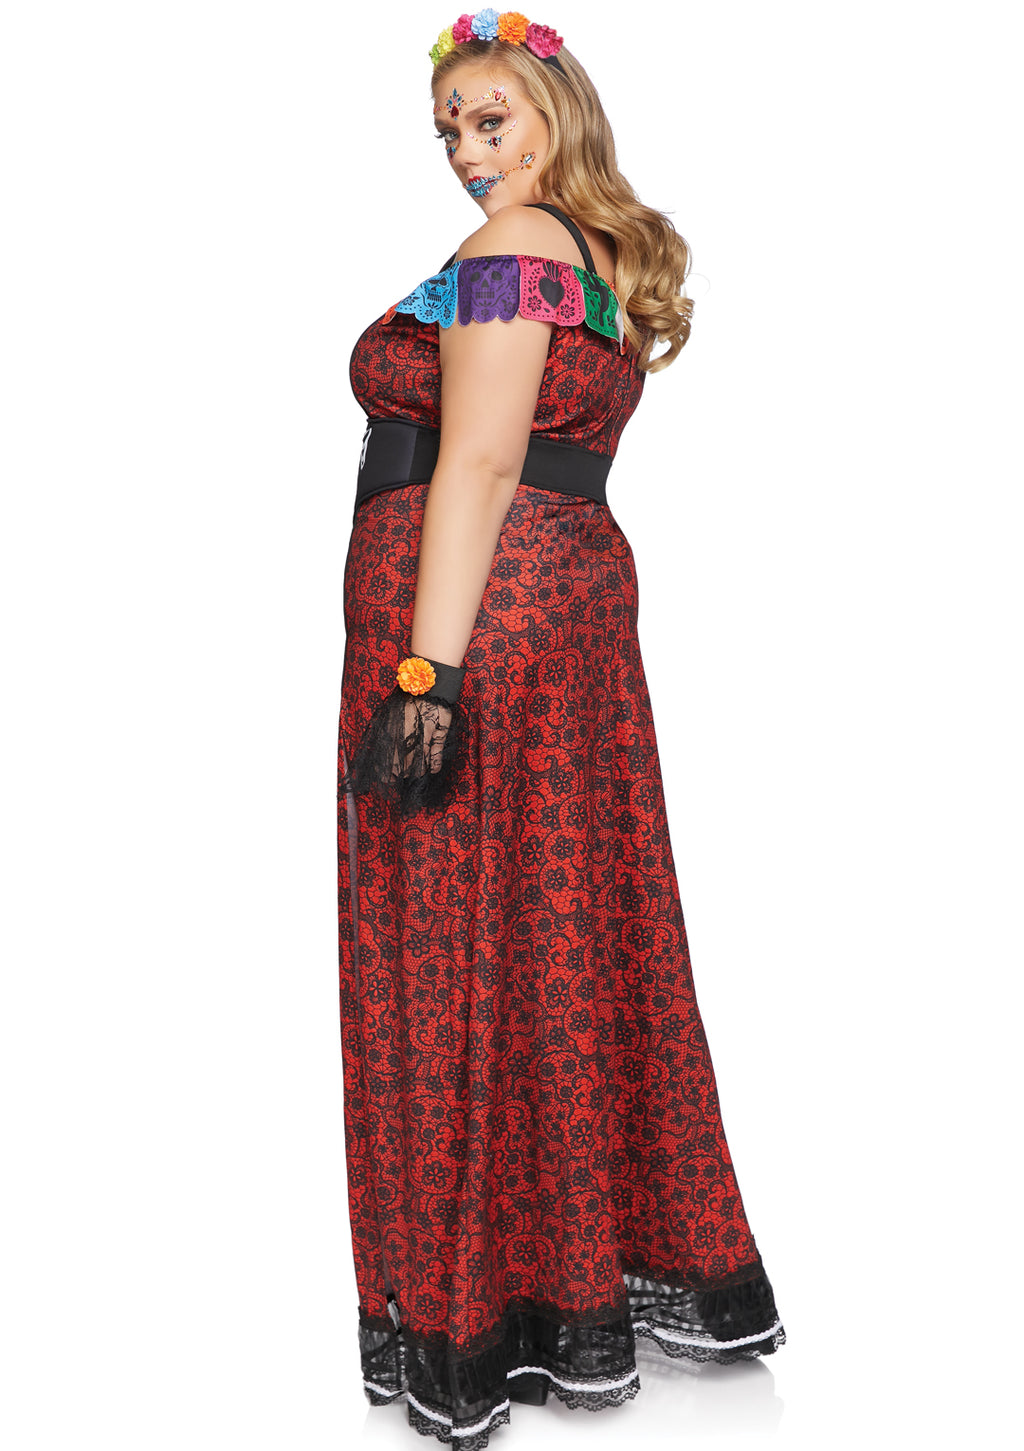 Plus Size Deluxe Day of the Dead Beauty Costume